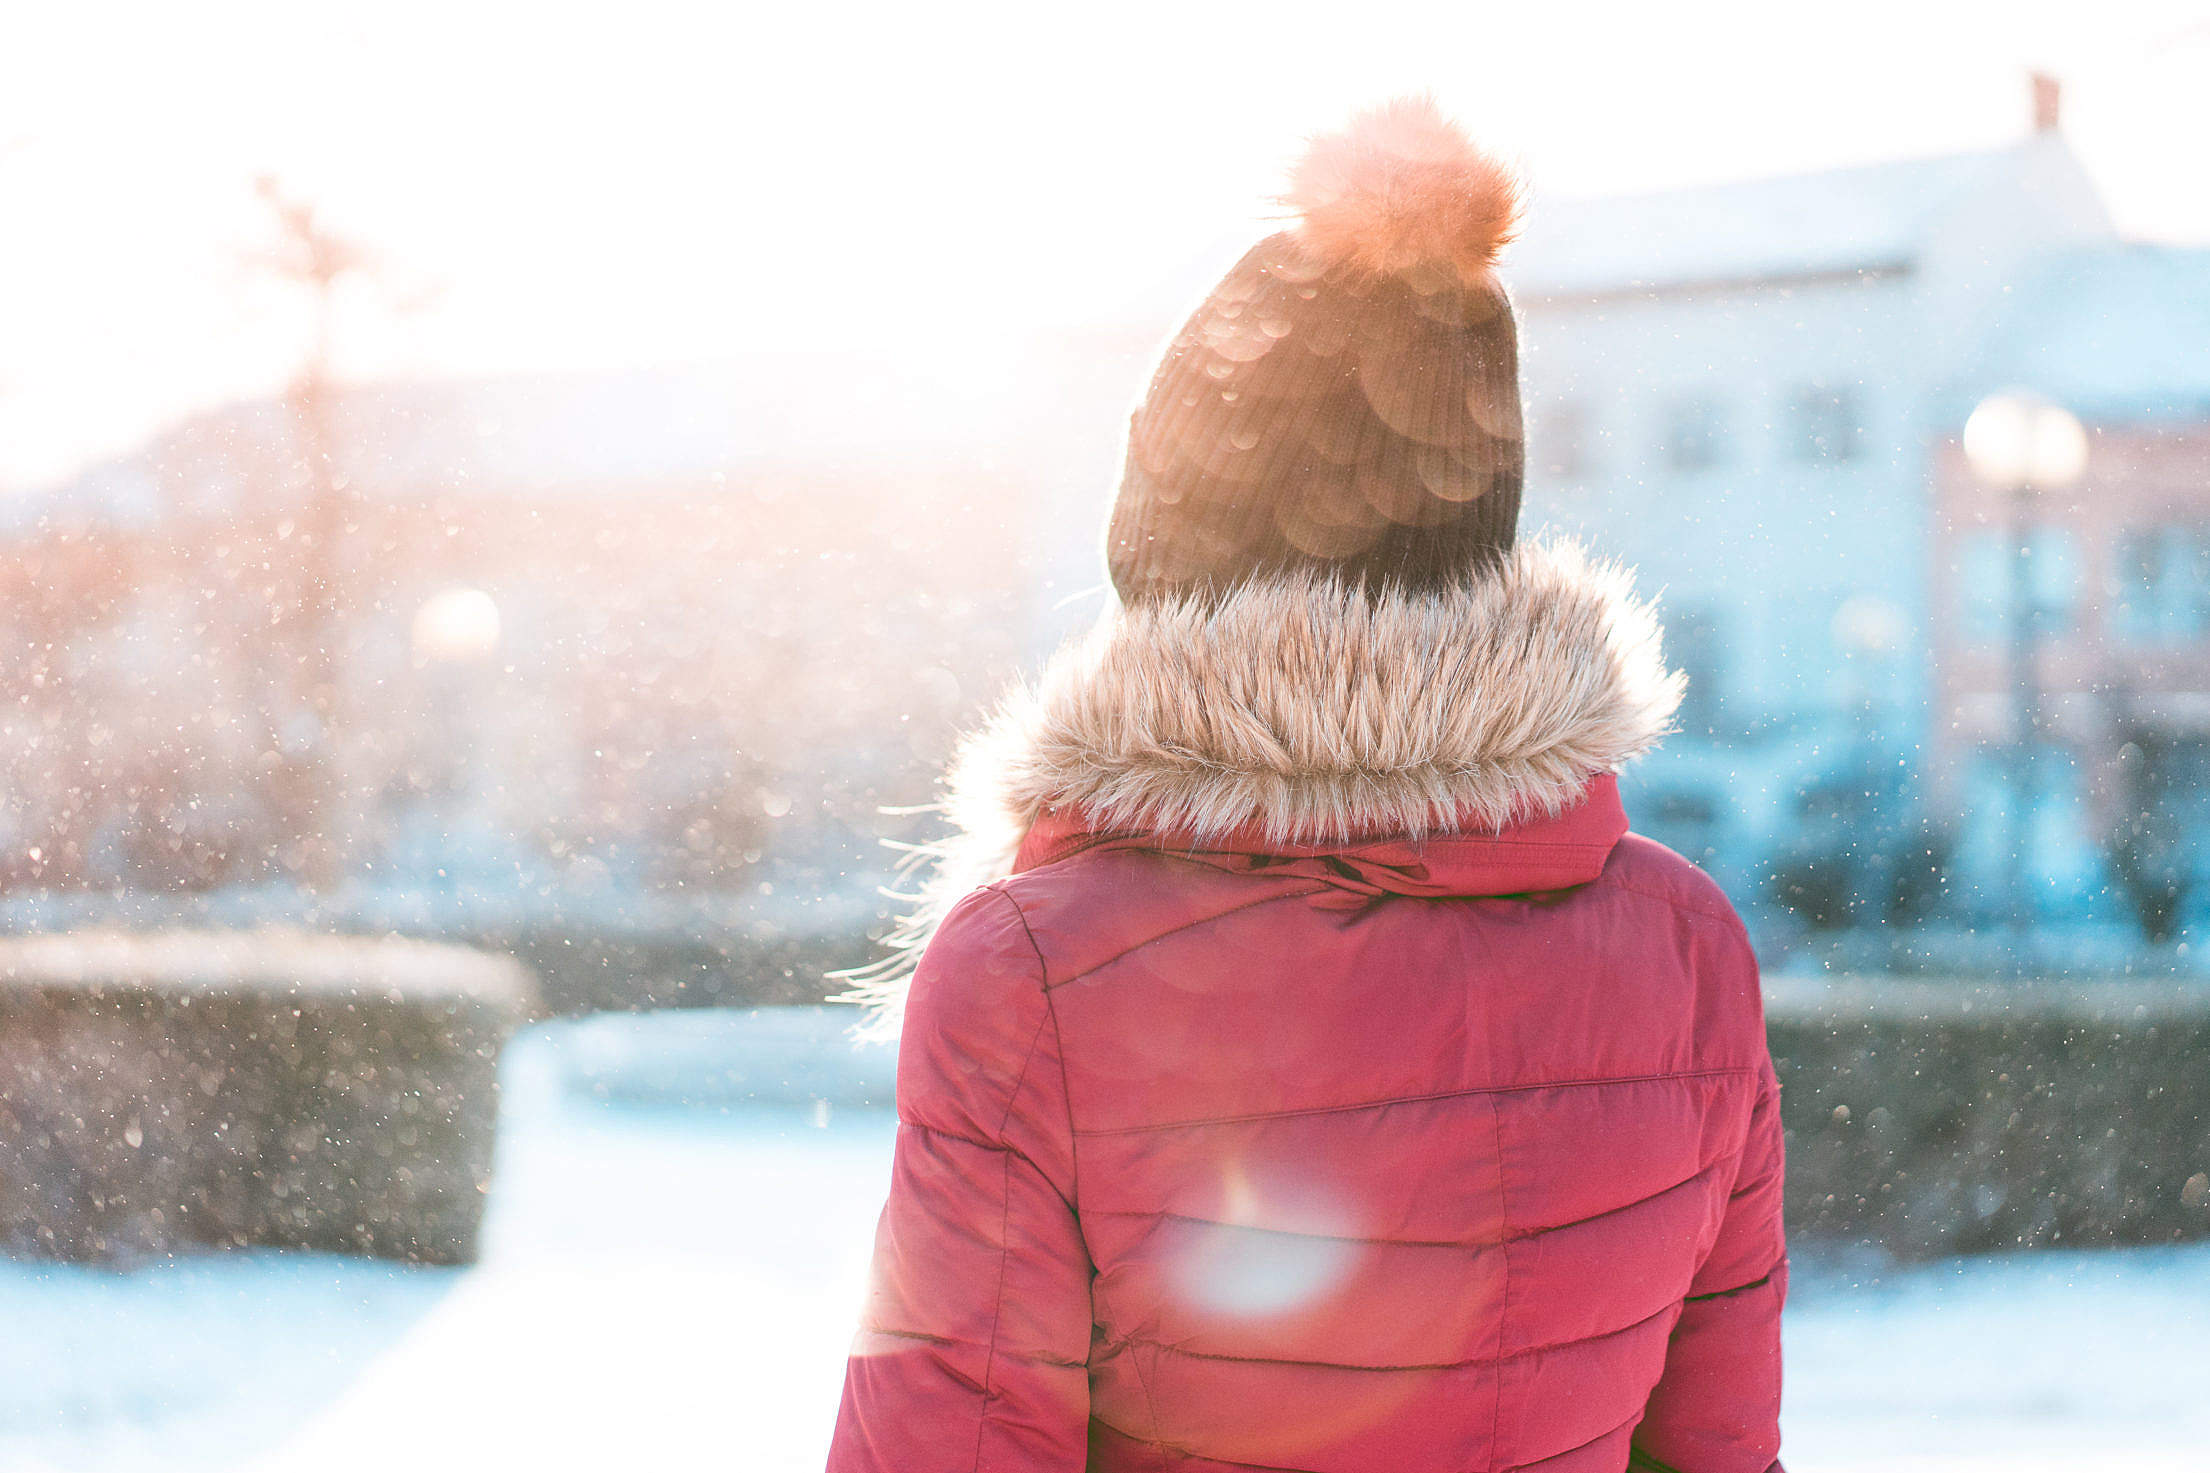 Woman Standing in Snowfall while Sun is Shining Free Stock Photo